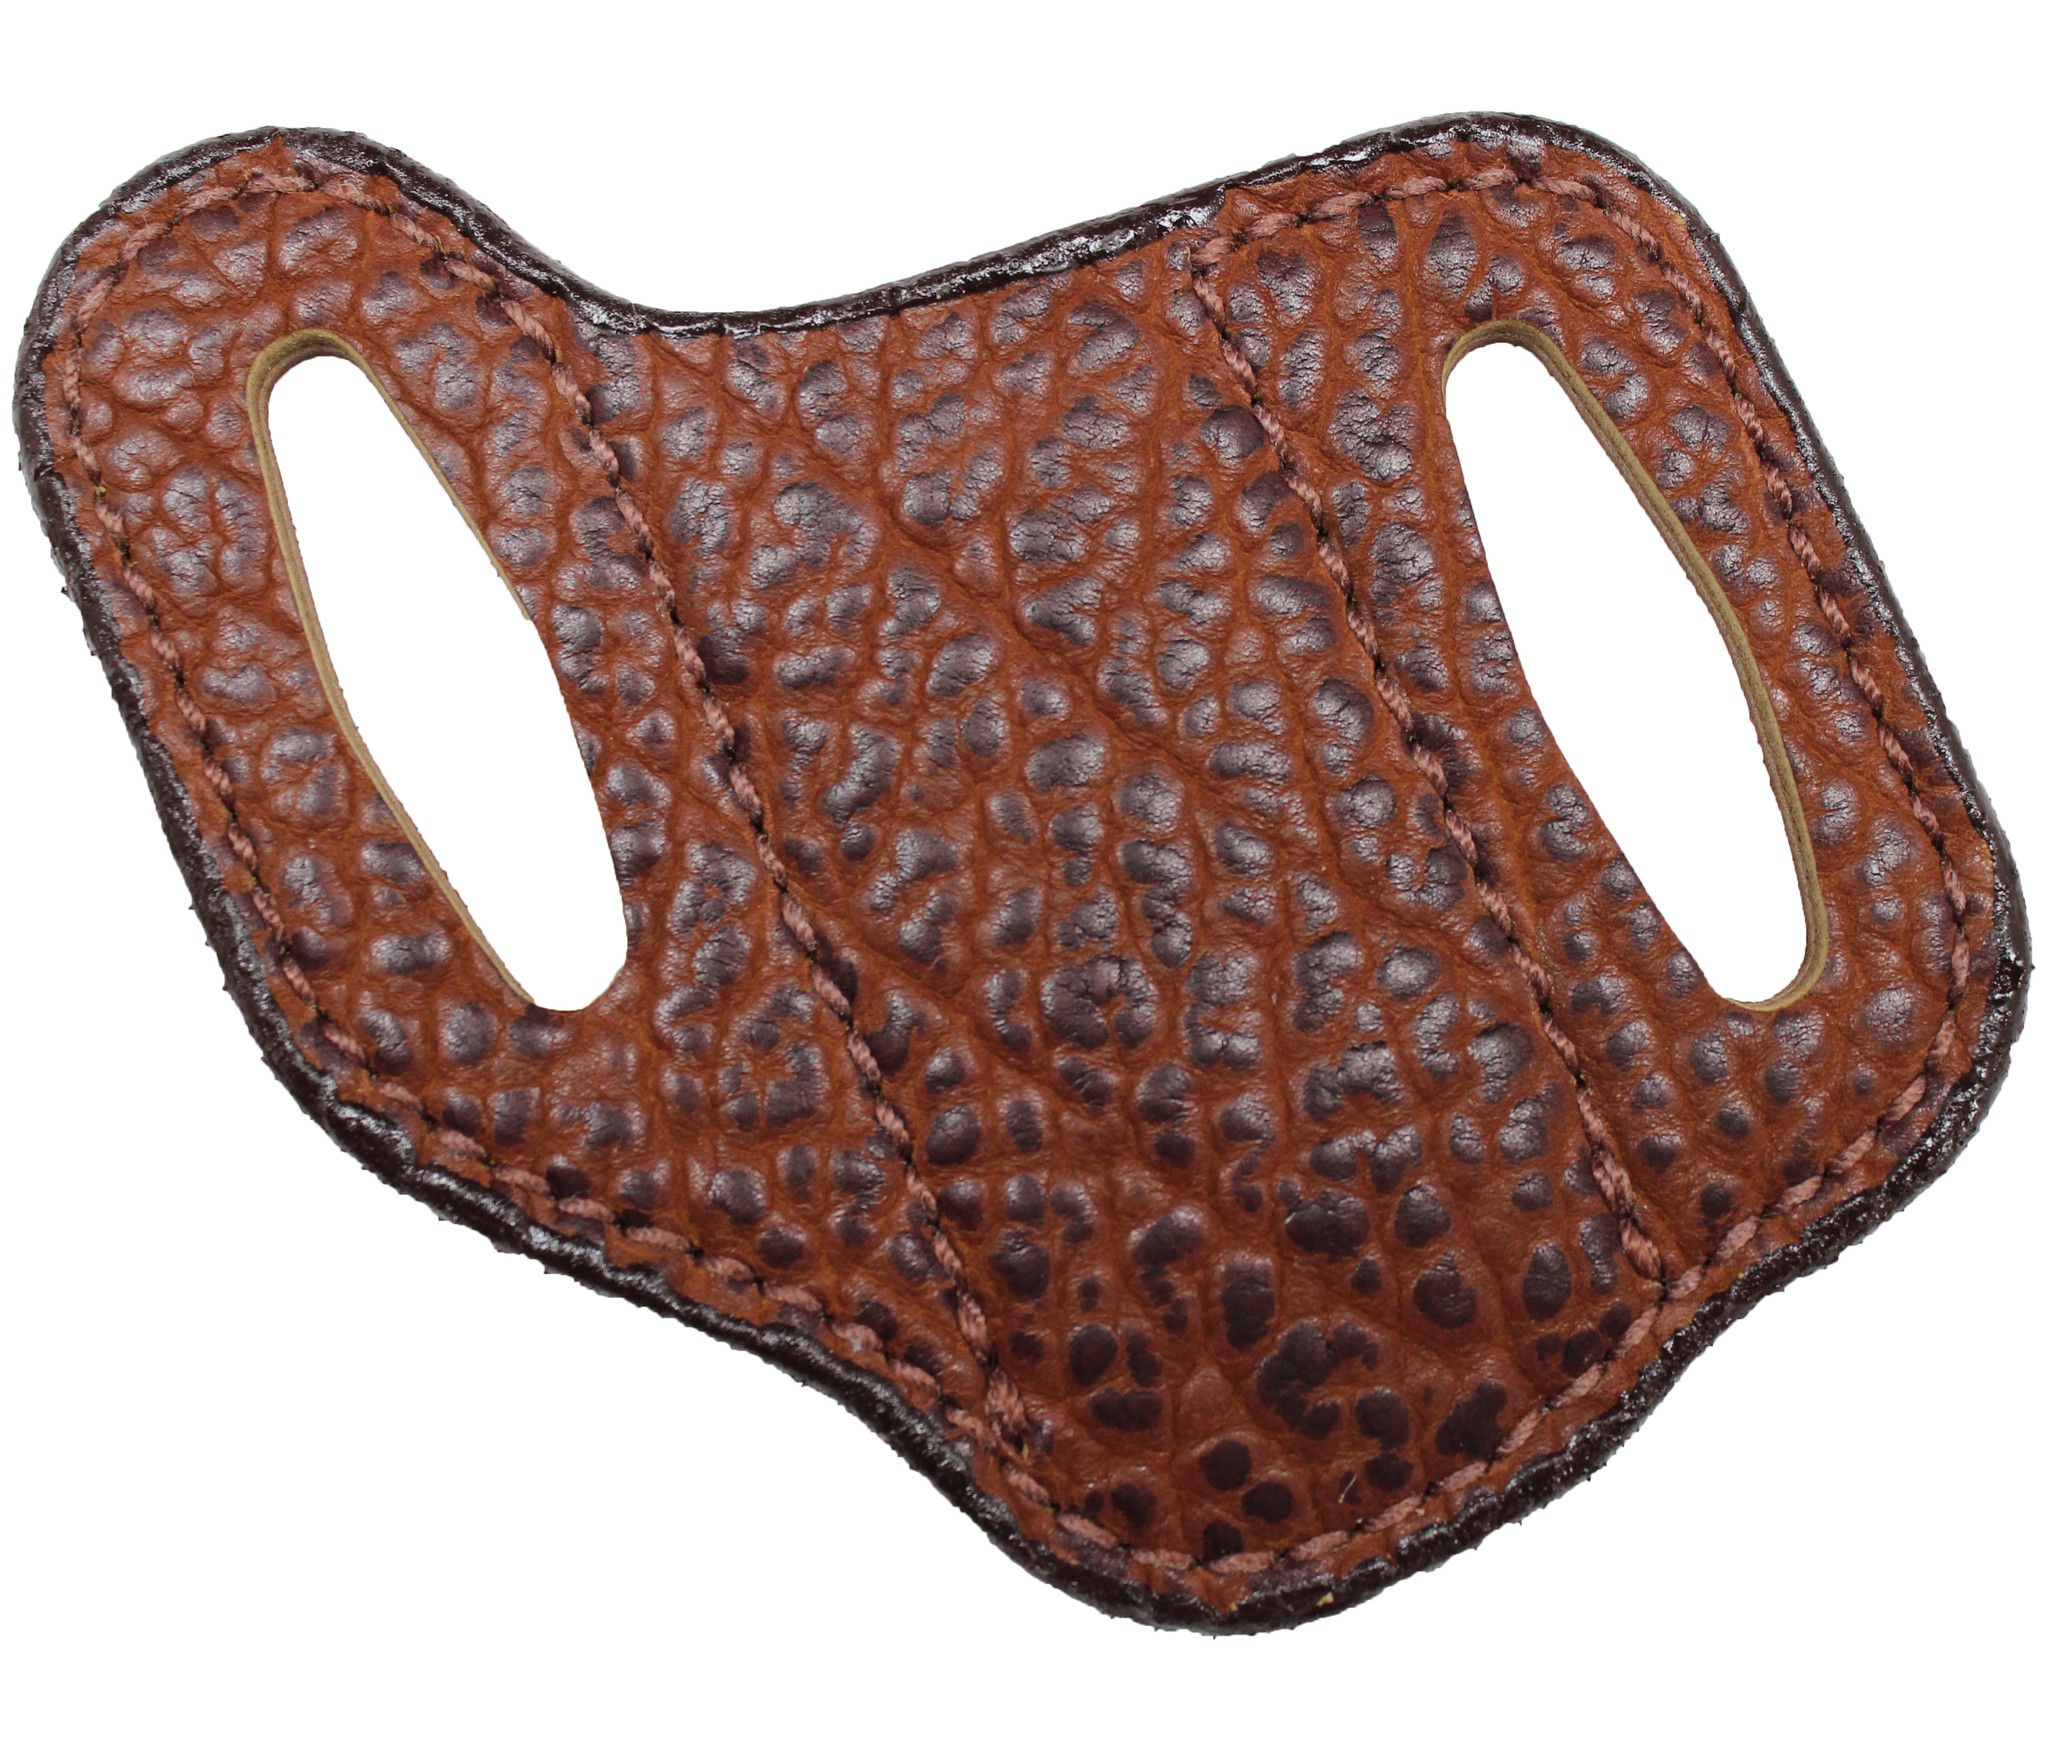 Chestnut American Bison Angle Knife Sheath – The Leather Guy, LLC